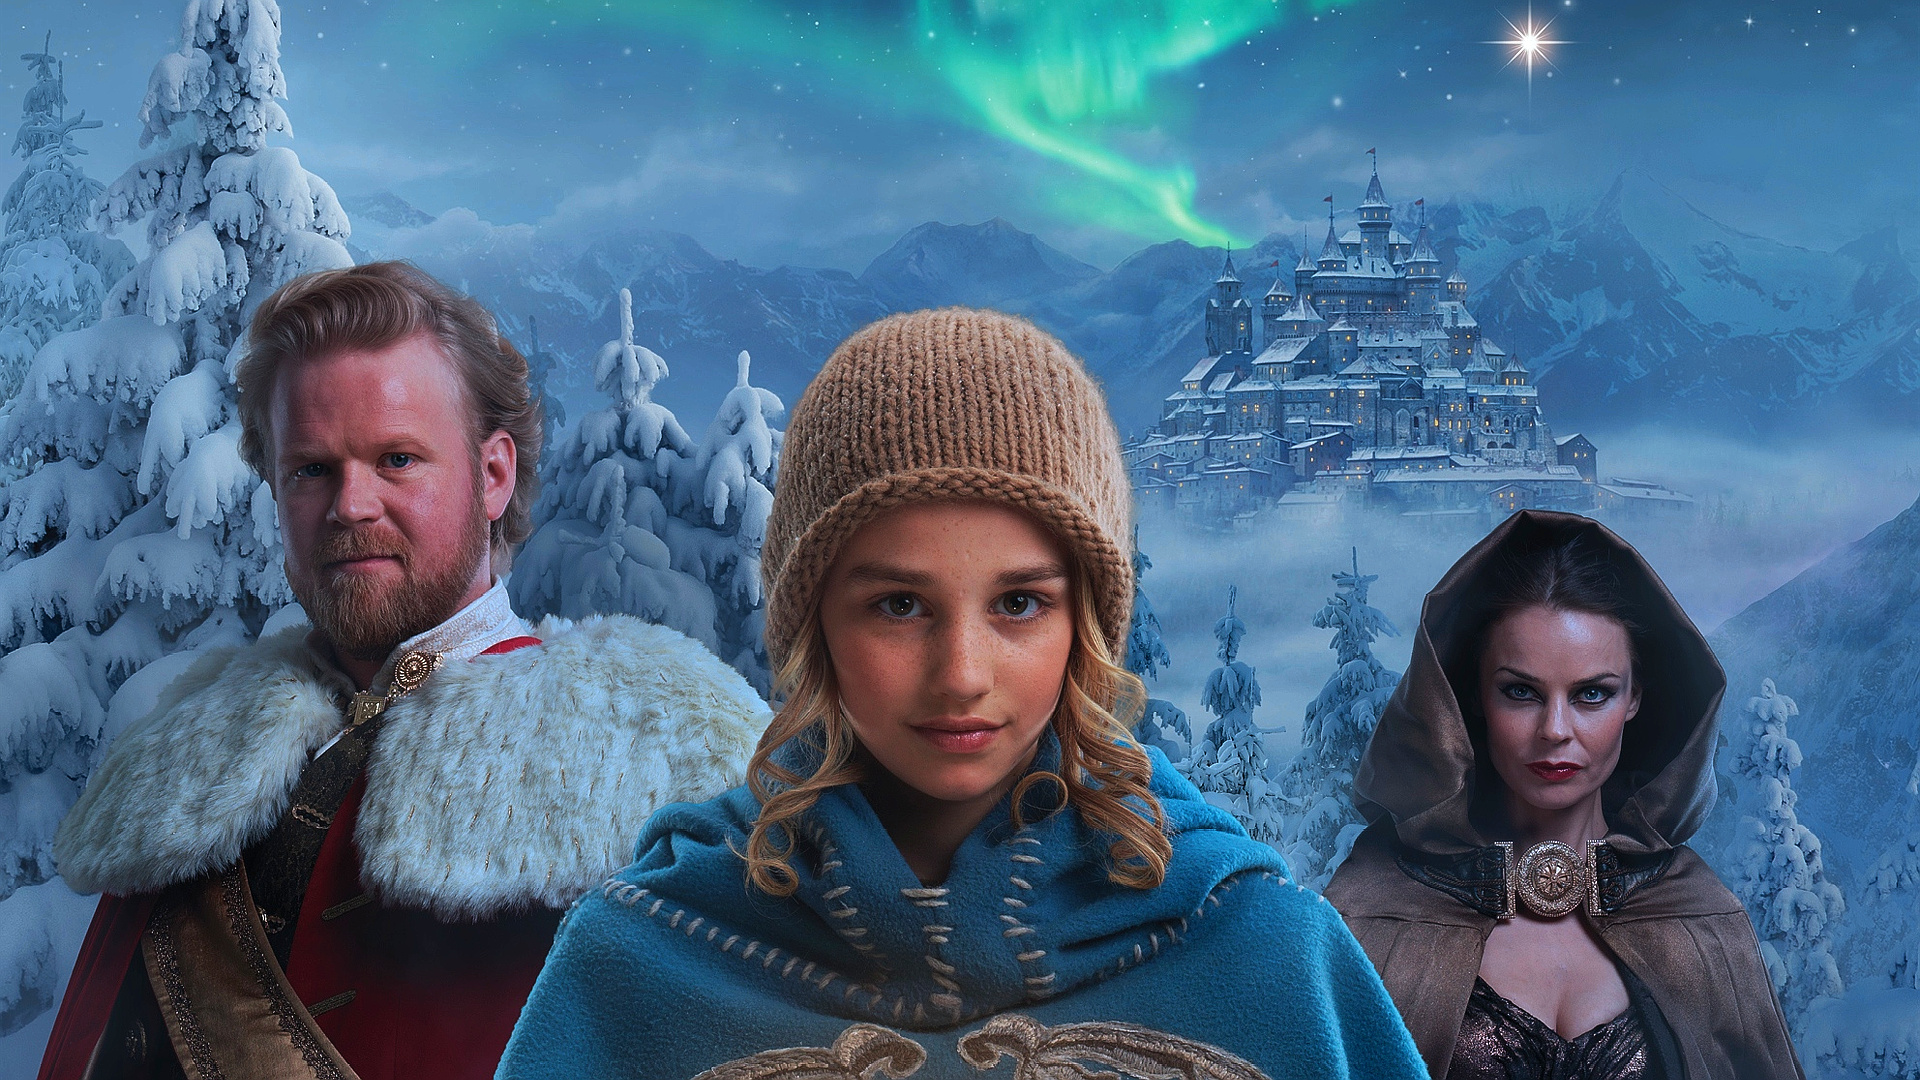 wallpapers id805848 - Journey To The Christmas Star Cast